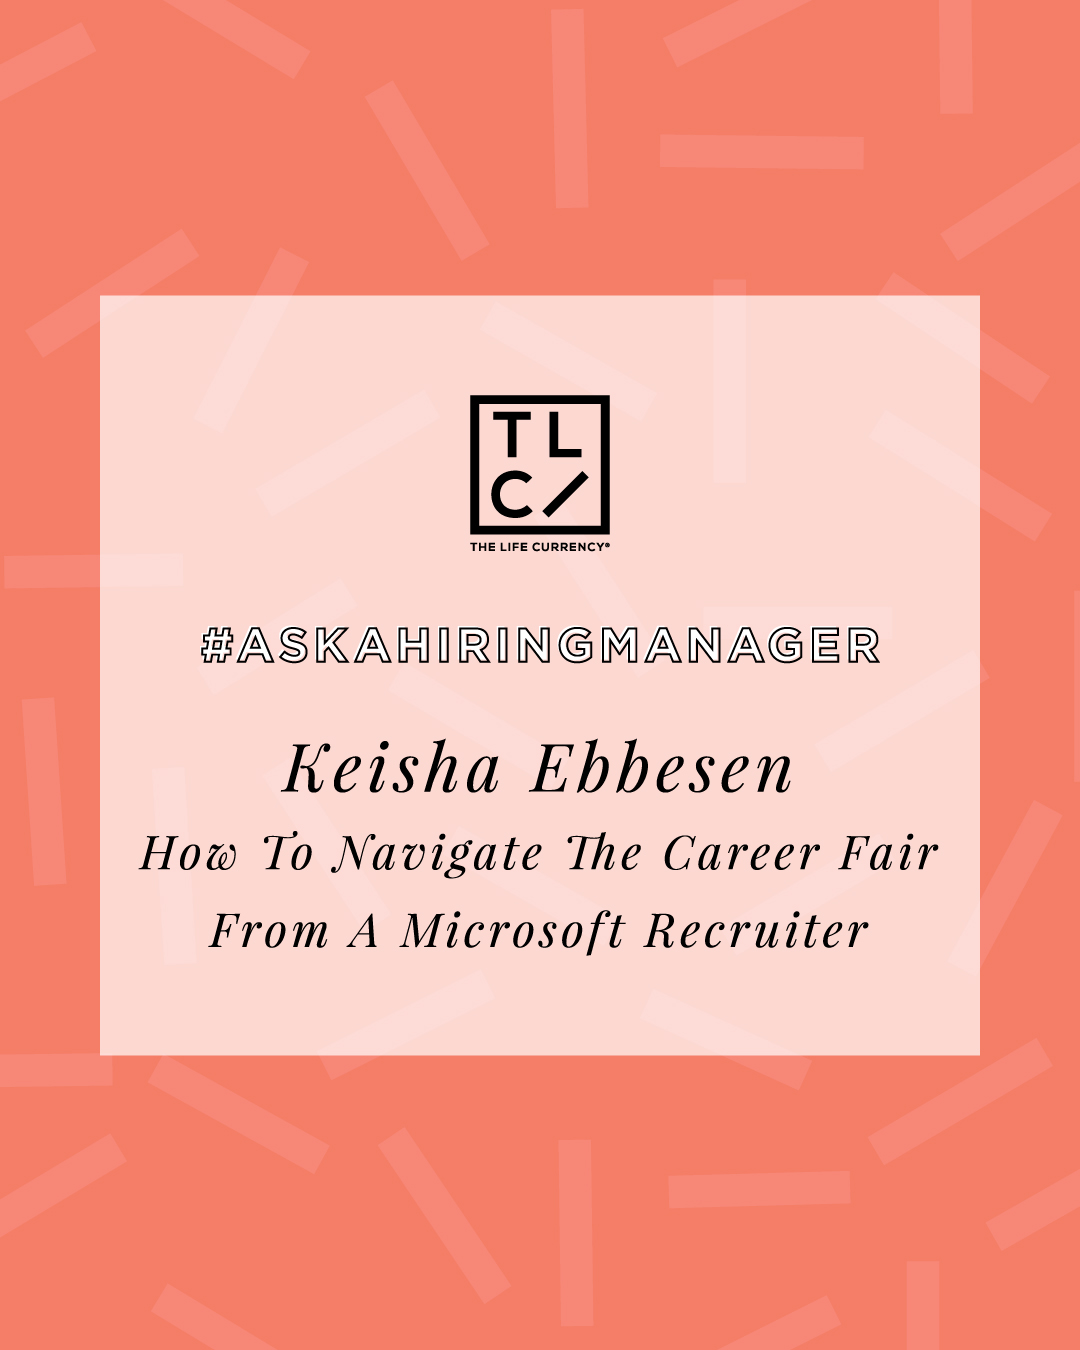 #AskAHiringManager: The Do's and Don'ts at a Career Fair from Microsoft Recruiter Keisha Ebbesen